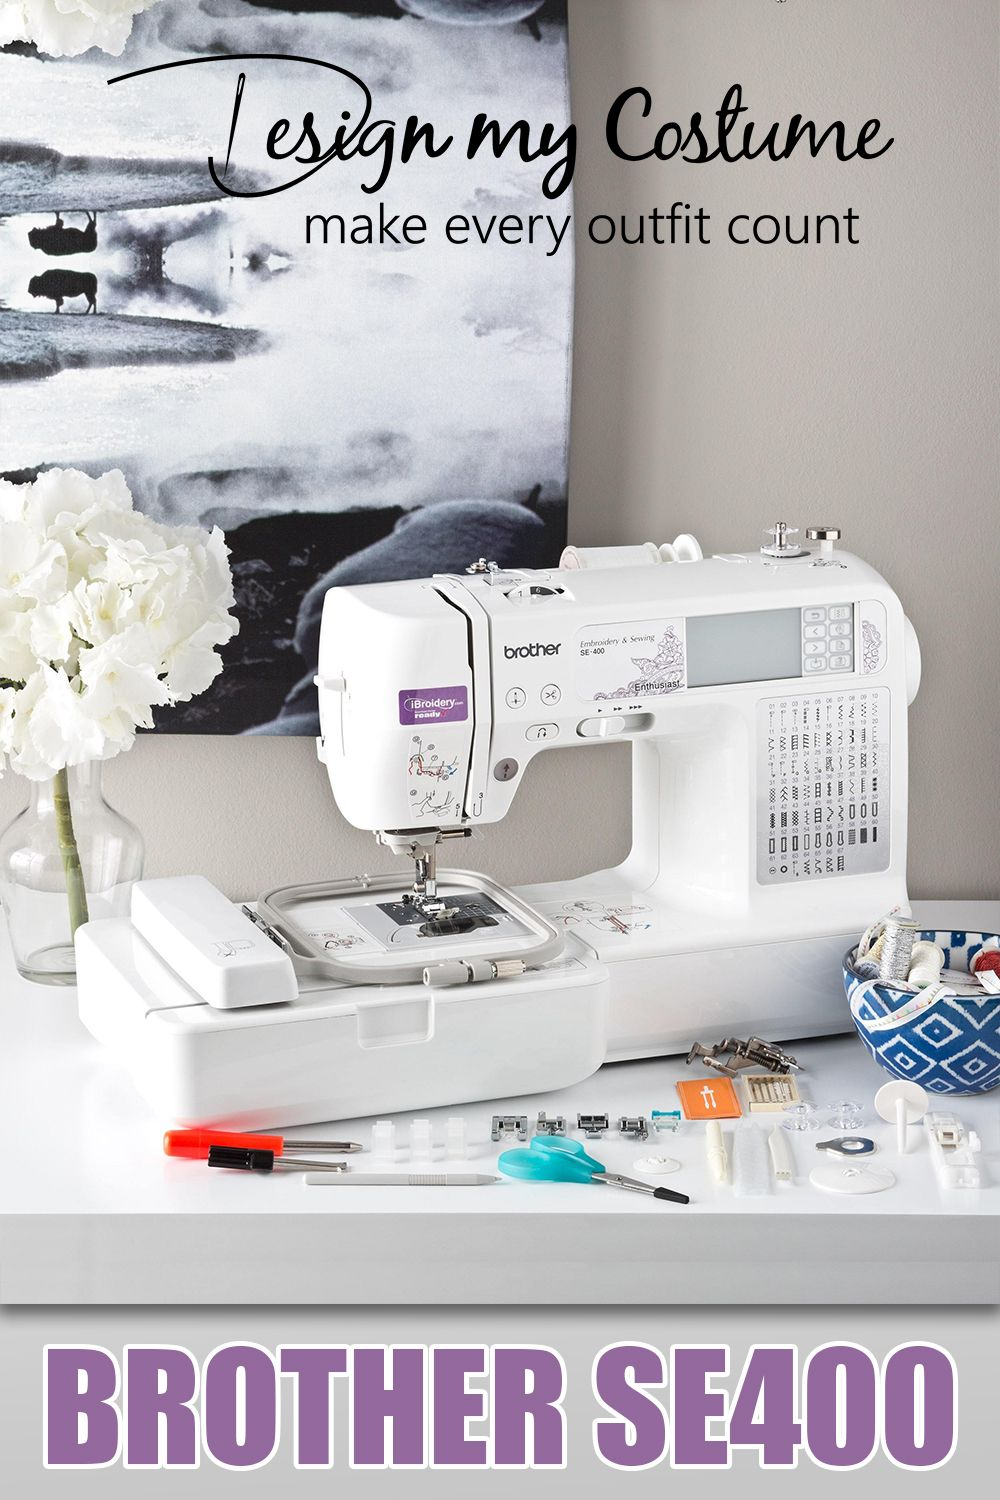 Brother SE400 Review (Embroidery & Sewing Machine